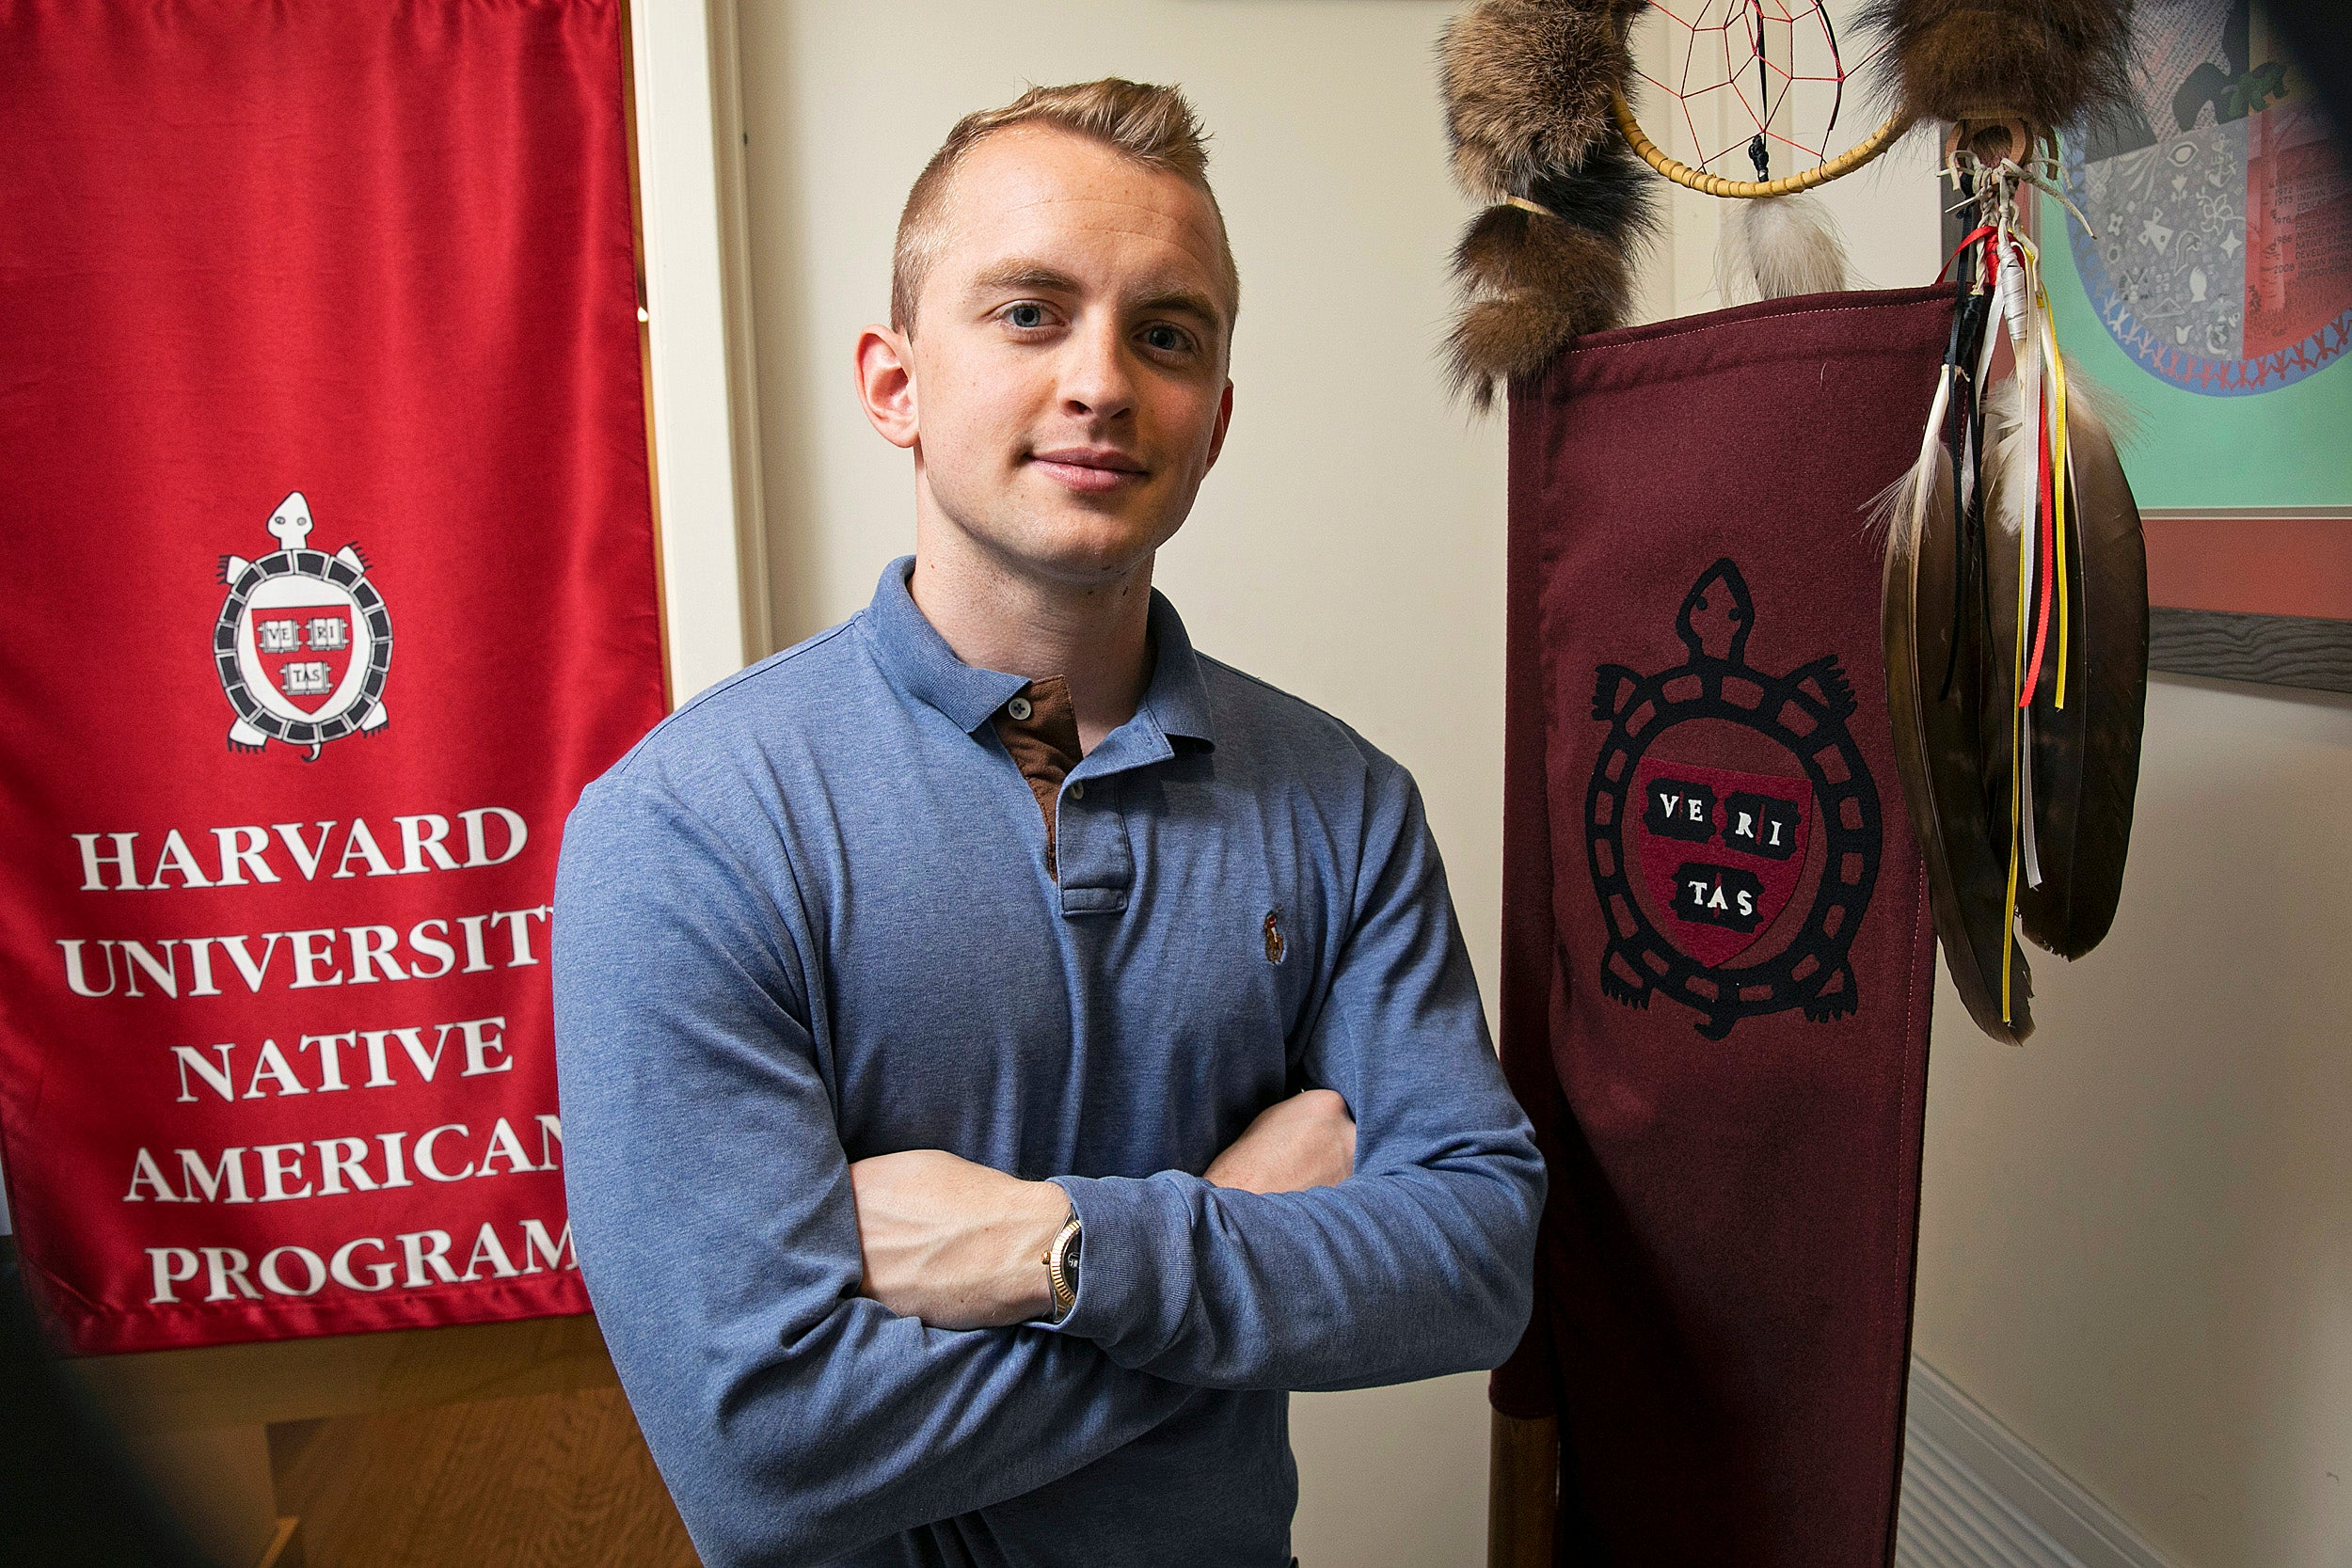 Truman Burrage maintained his Oklahoma roots while at Harvard.